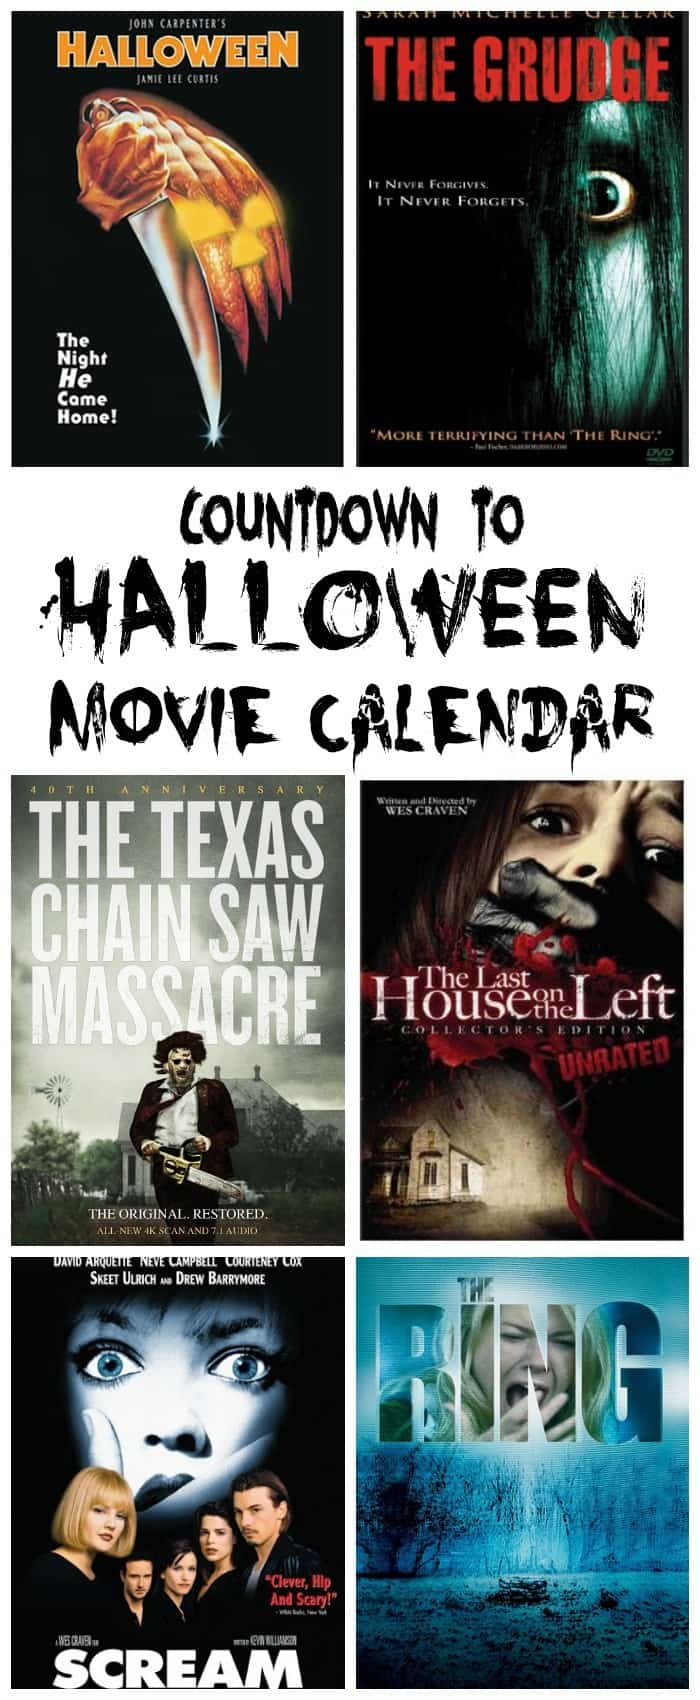 Print off this ultimate horror movie calendar and countdown to Halloween with scary movies!